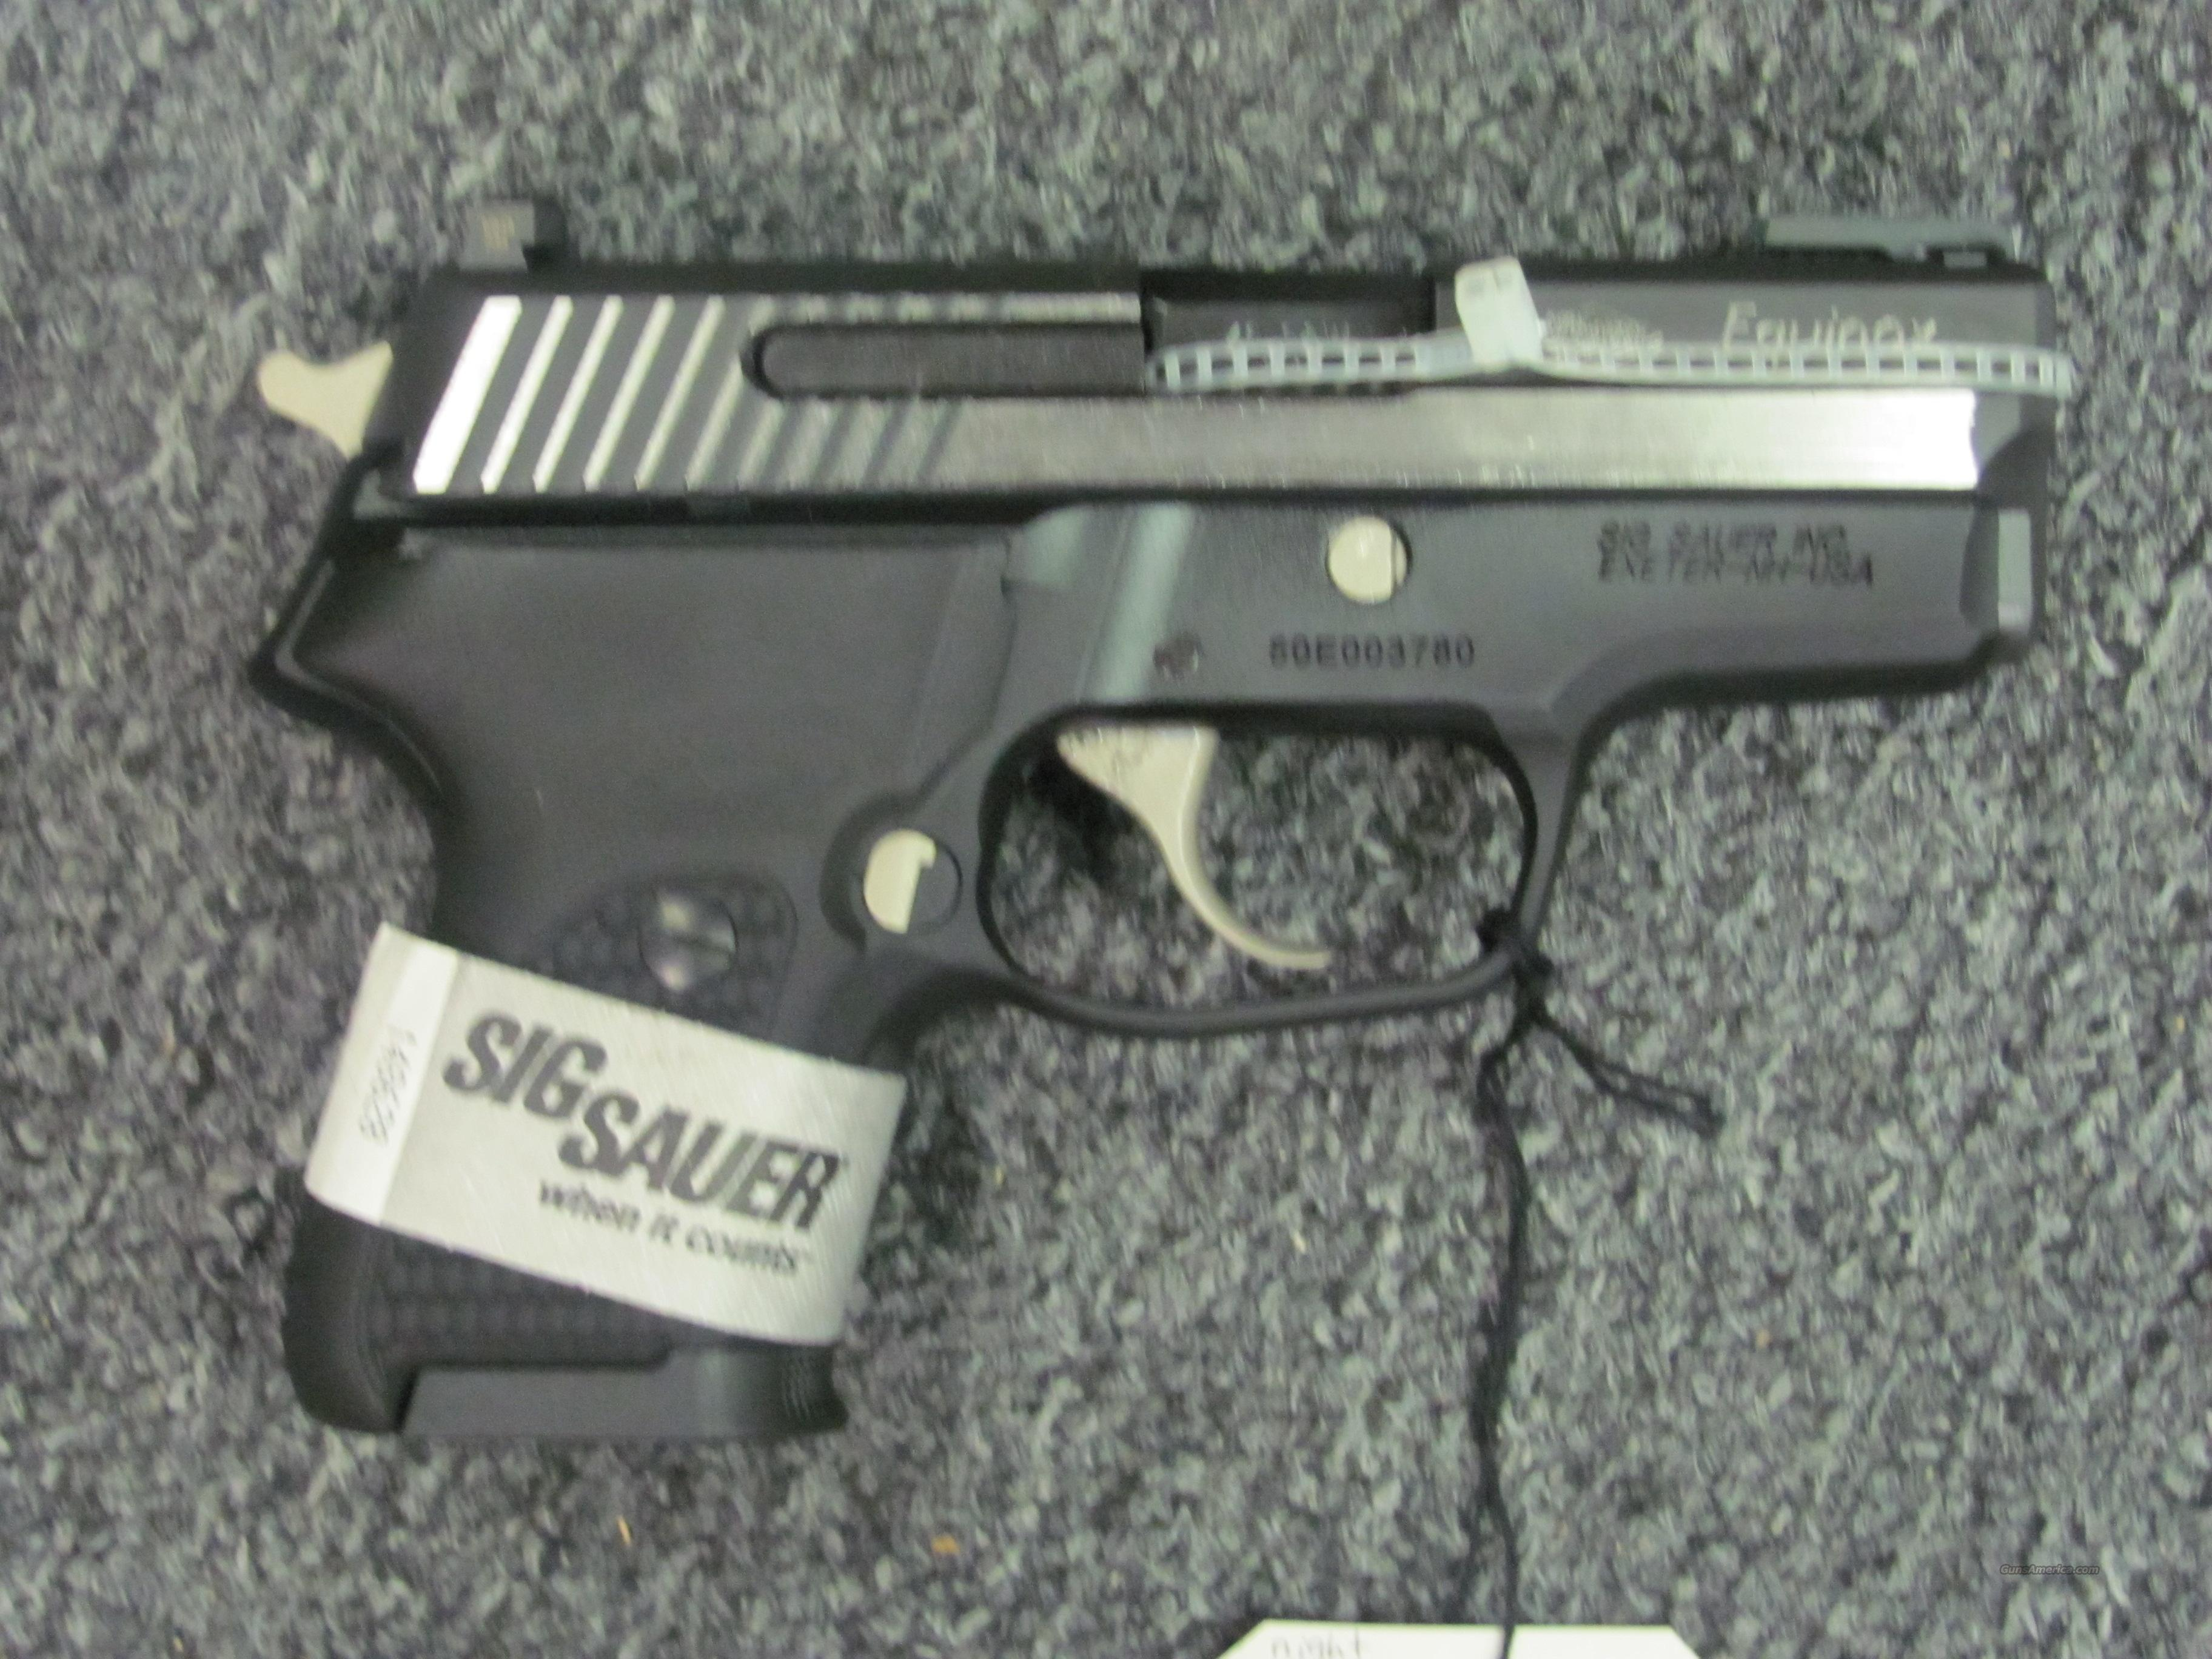 P224 Equinox  Guns > Pistols > Sig - Sauer/Sigarms Pistols > Other